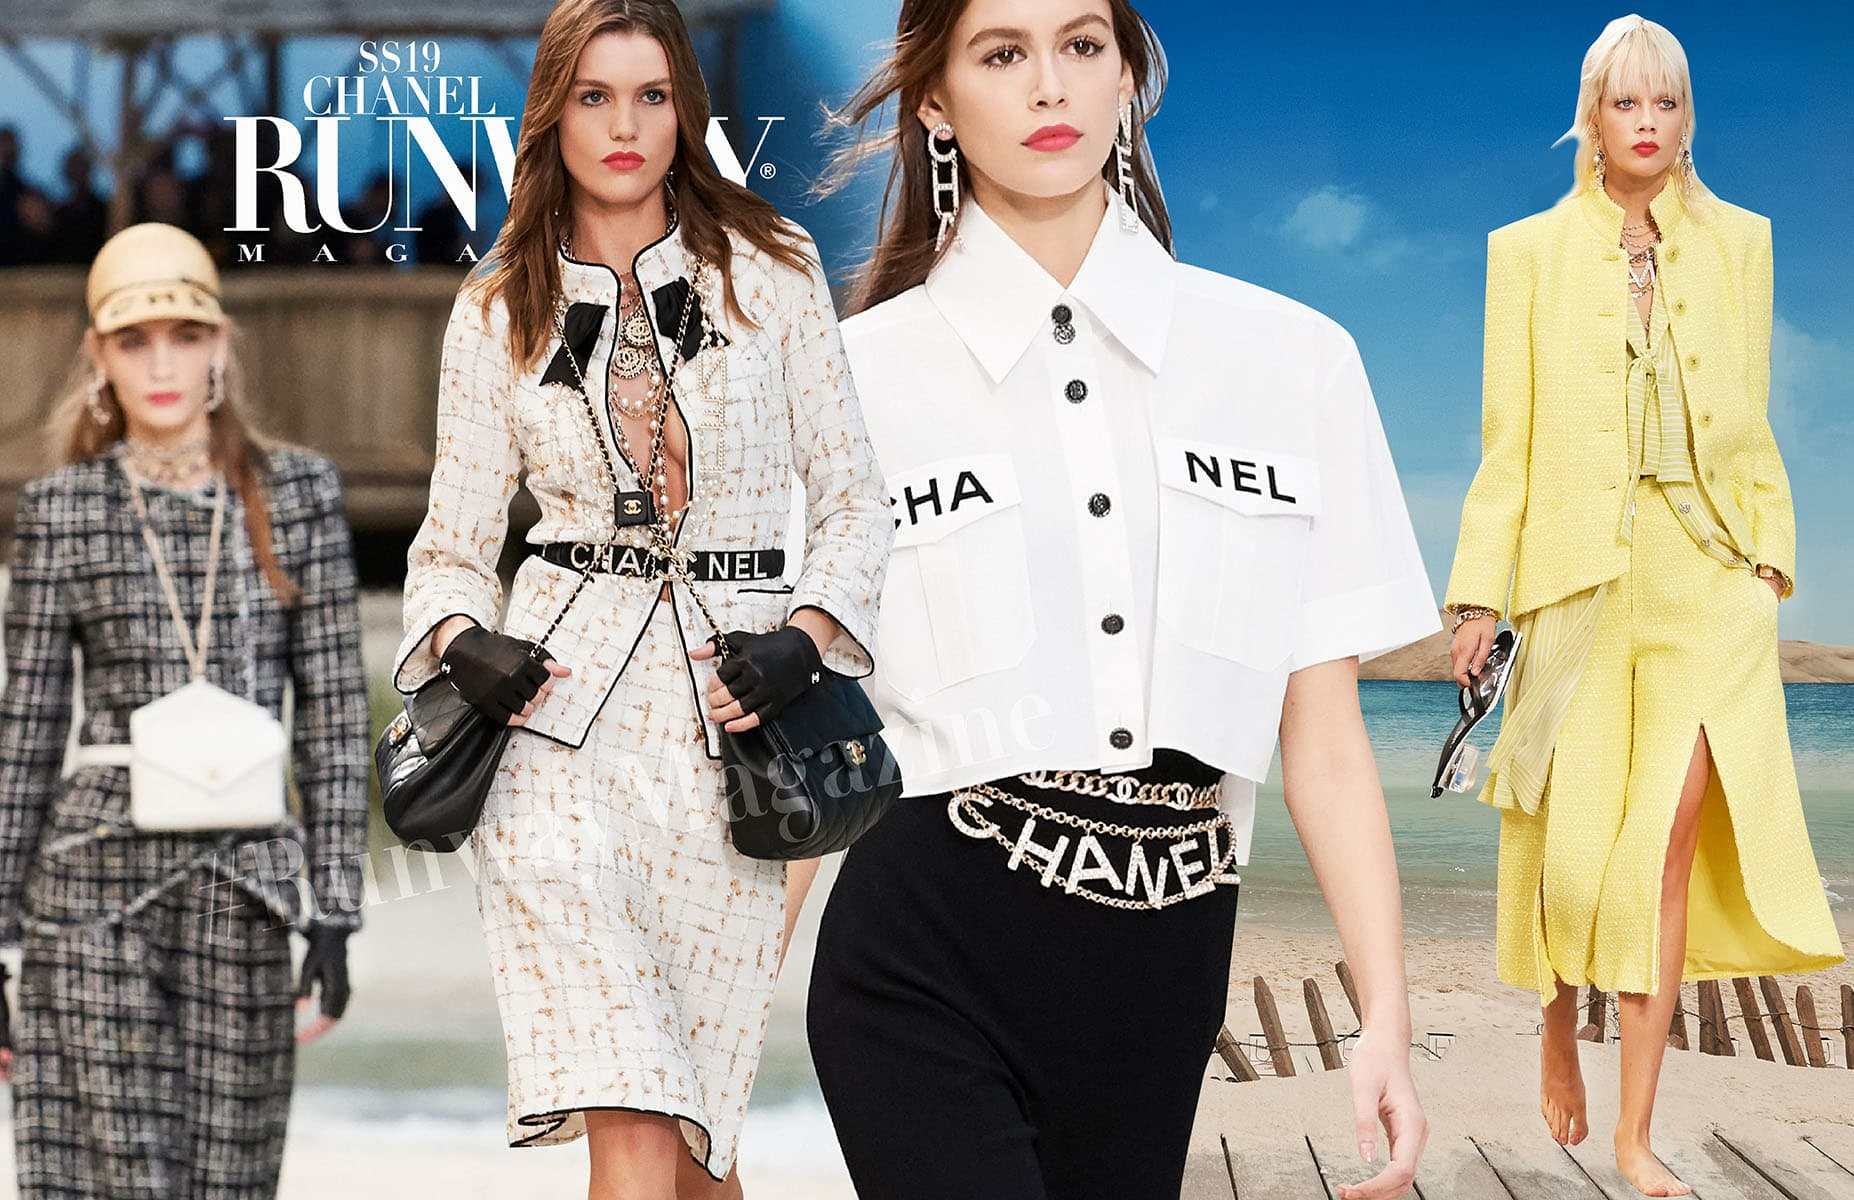 Chanel Spring Summer 2019 Paris Fashion Week by Runway Magazine